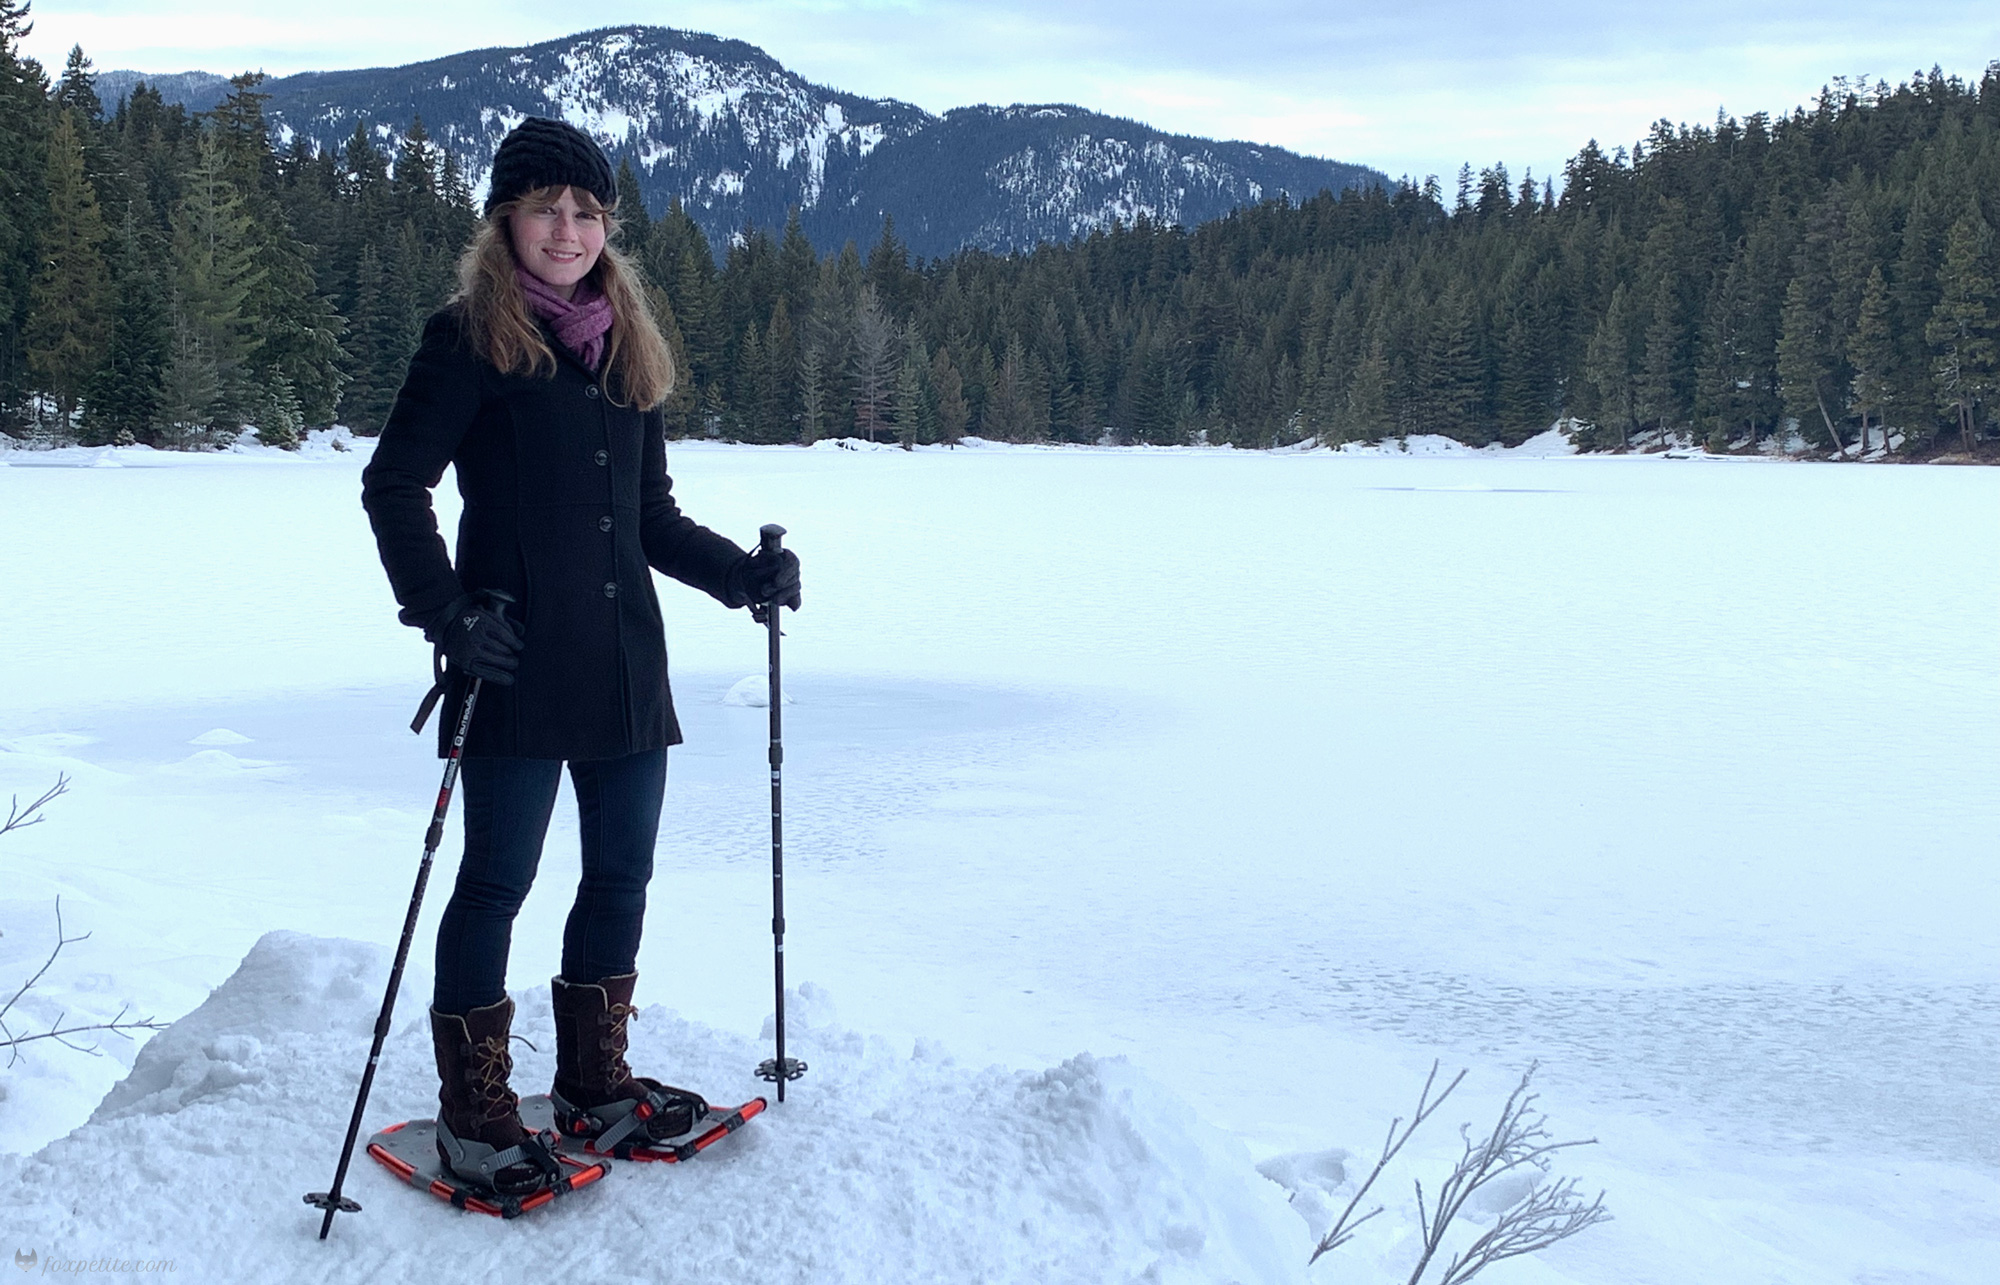 How to Find Snowshoes for Petites with Small Feet | blogger Fox Petite writes about her experience finding snow shoes in the right size for a winter hike | petite fashion, petite style